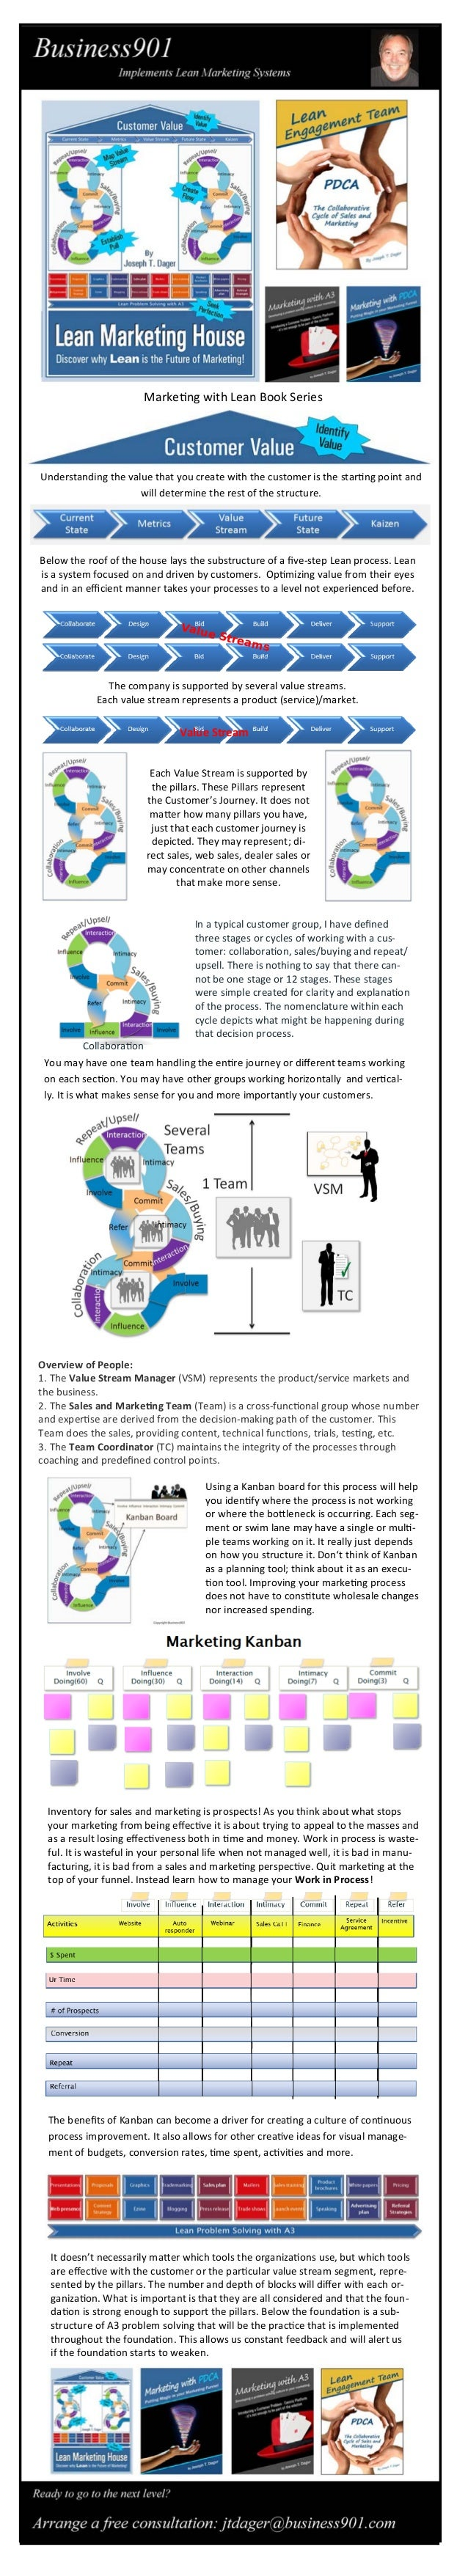 Lean Marketing House InfoGraphic